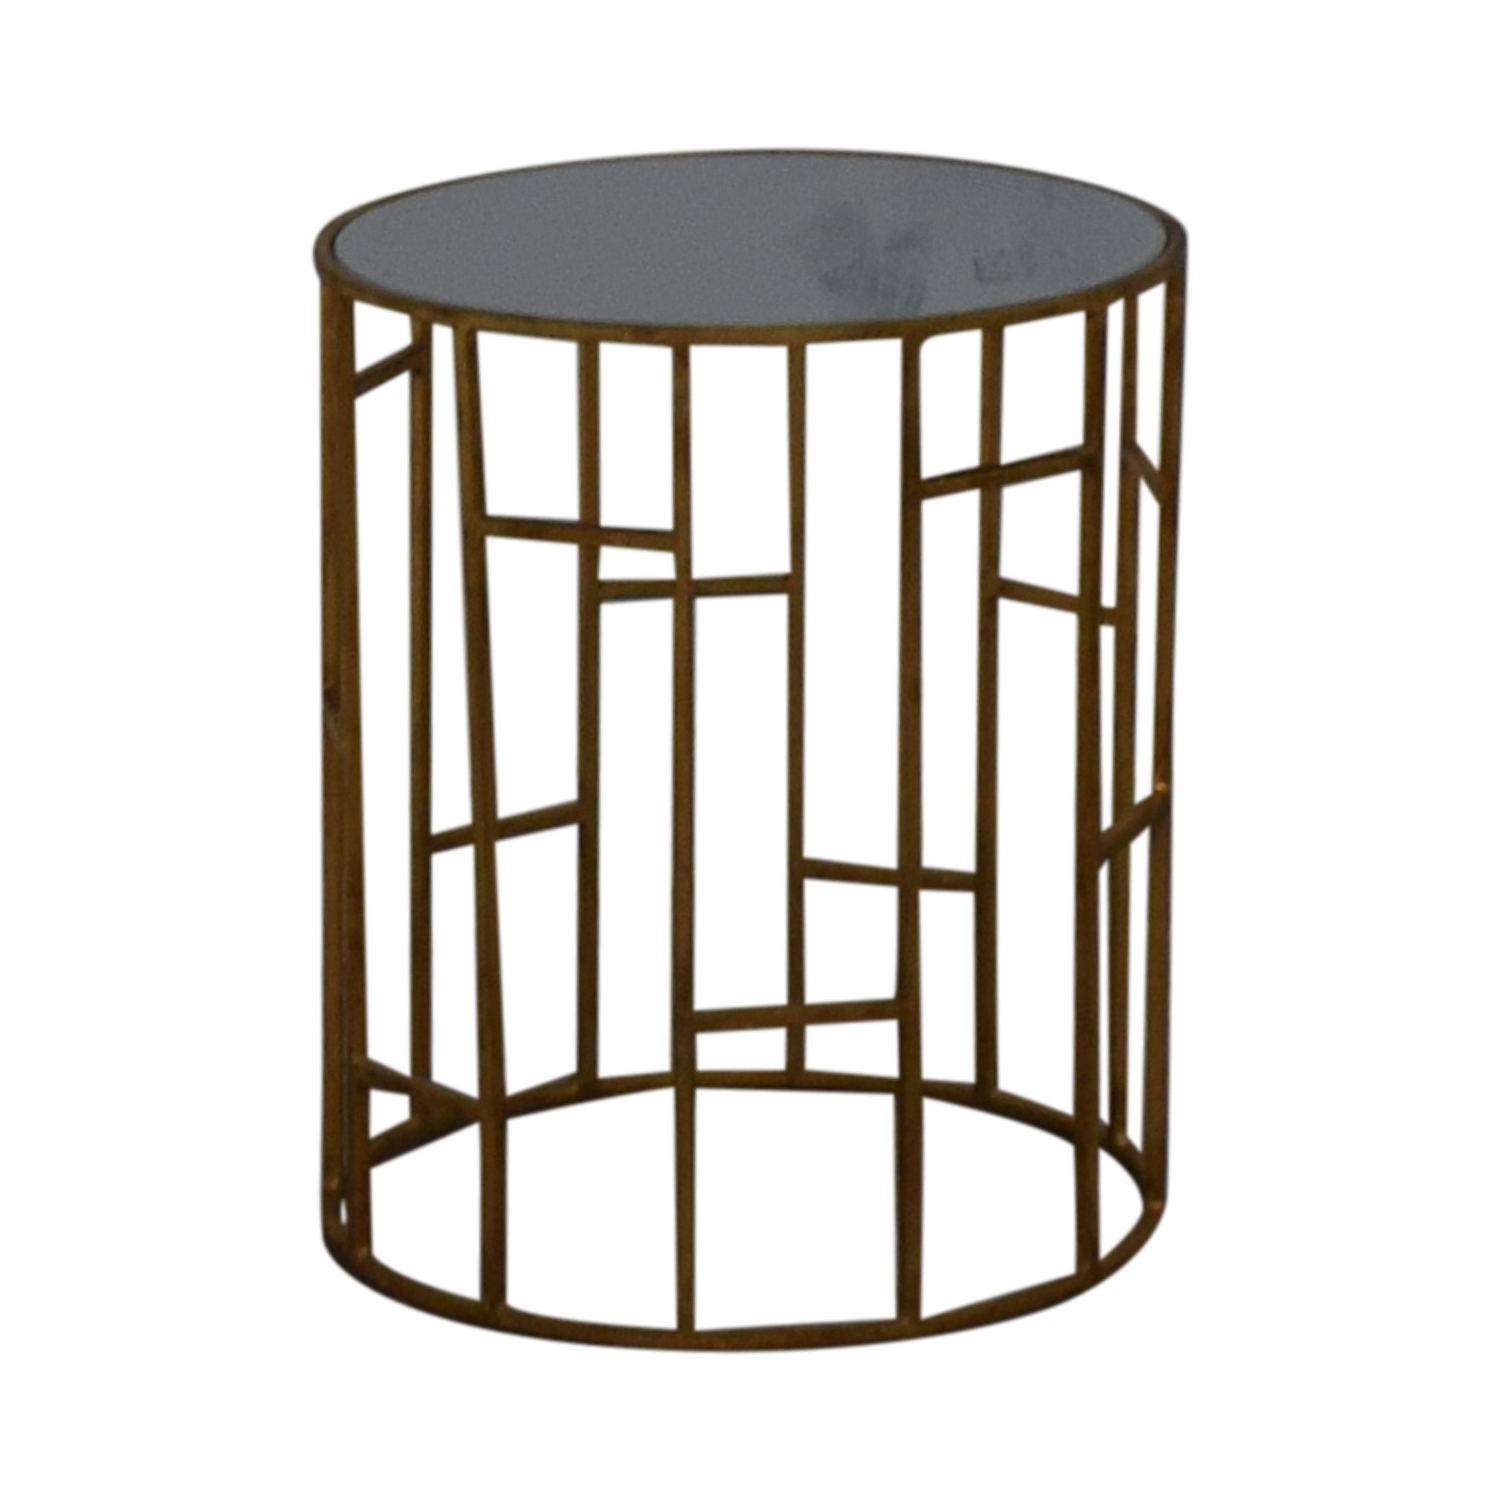 Safavieh Safavieh Doreen Gold & Glass Accent Table Tables